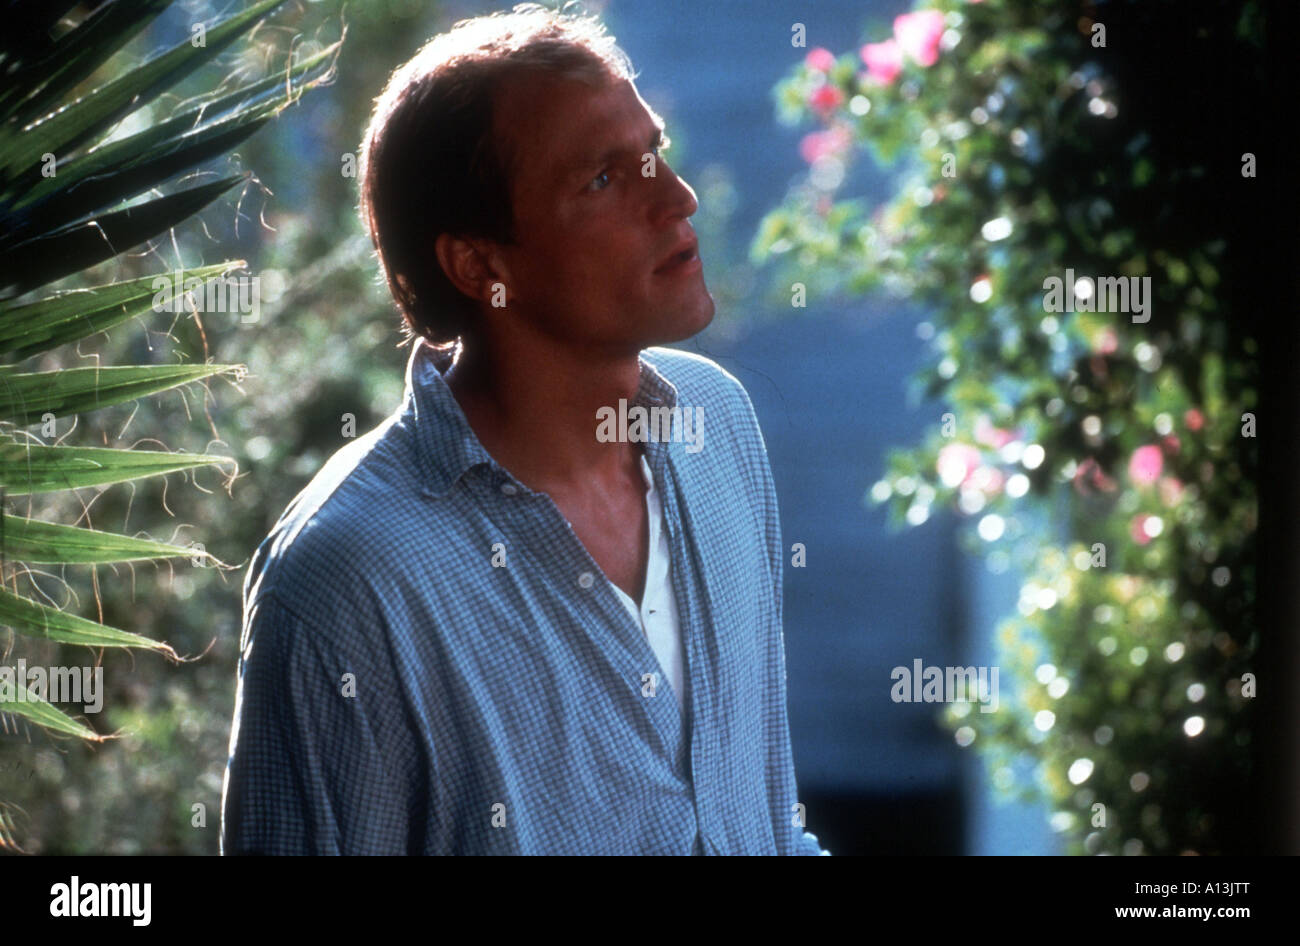 Indecent Proposal Year 1993 Director Adrian Lyne Woody Harrelson - Stock Image